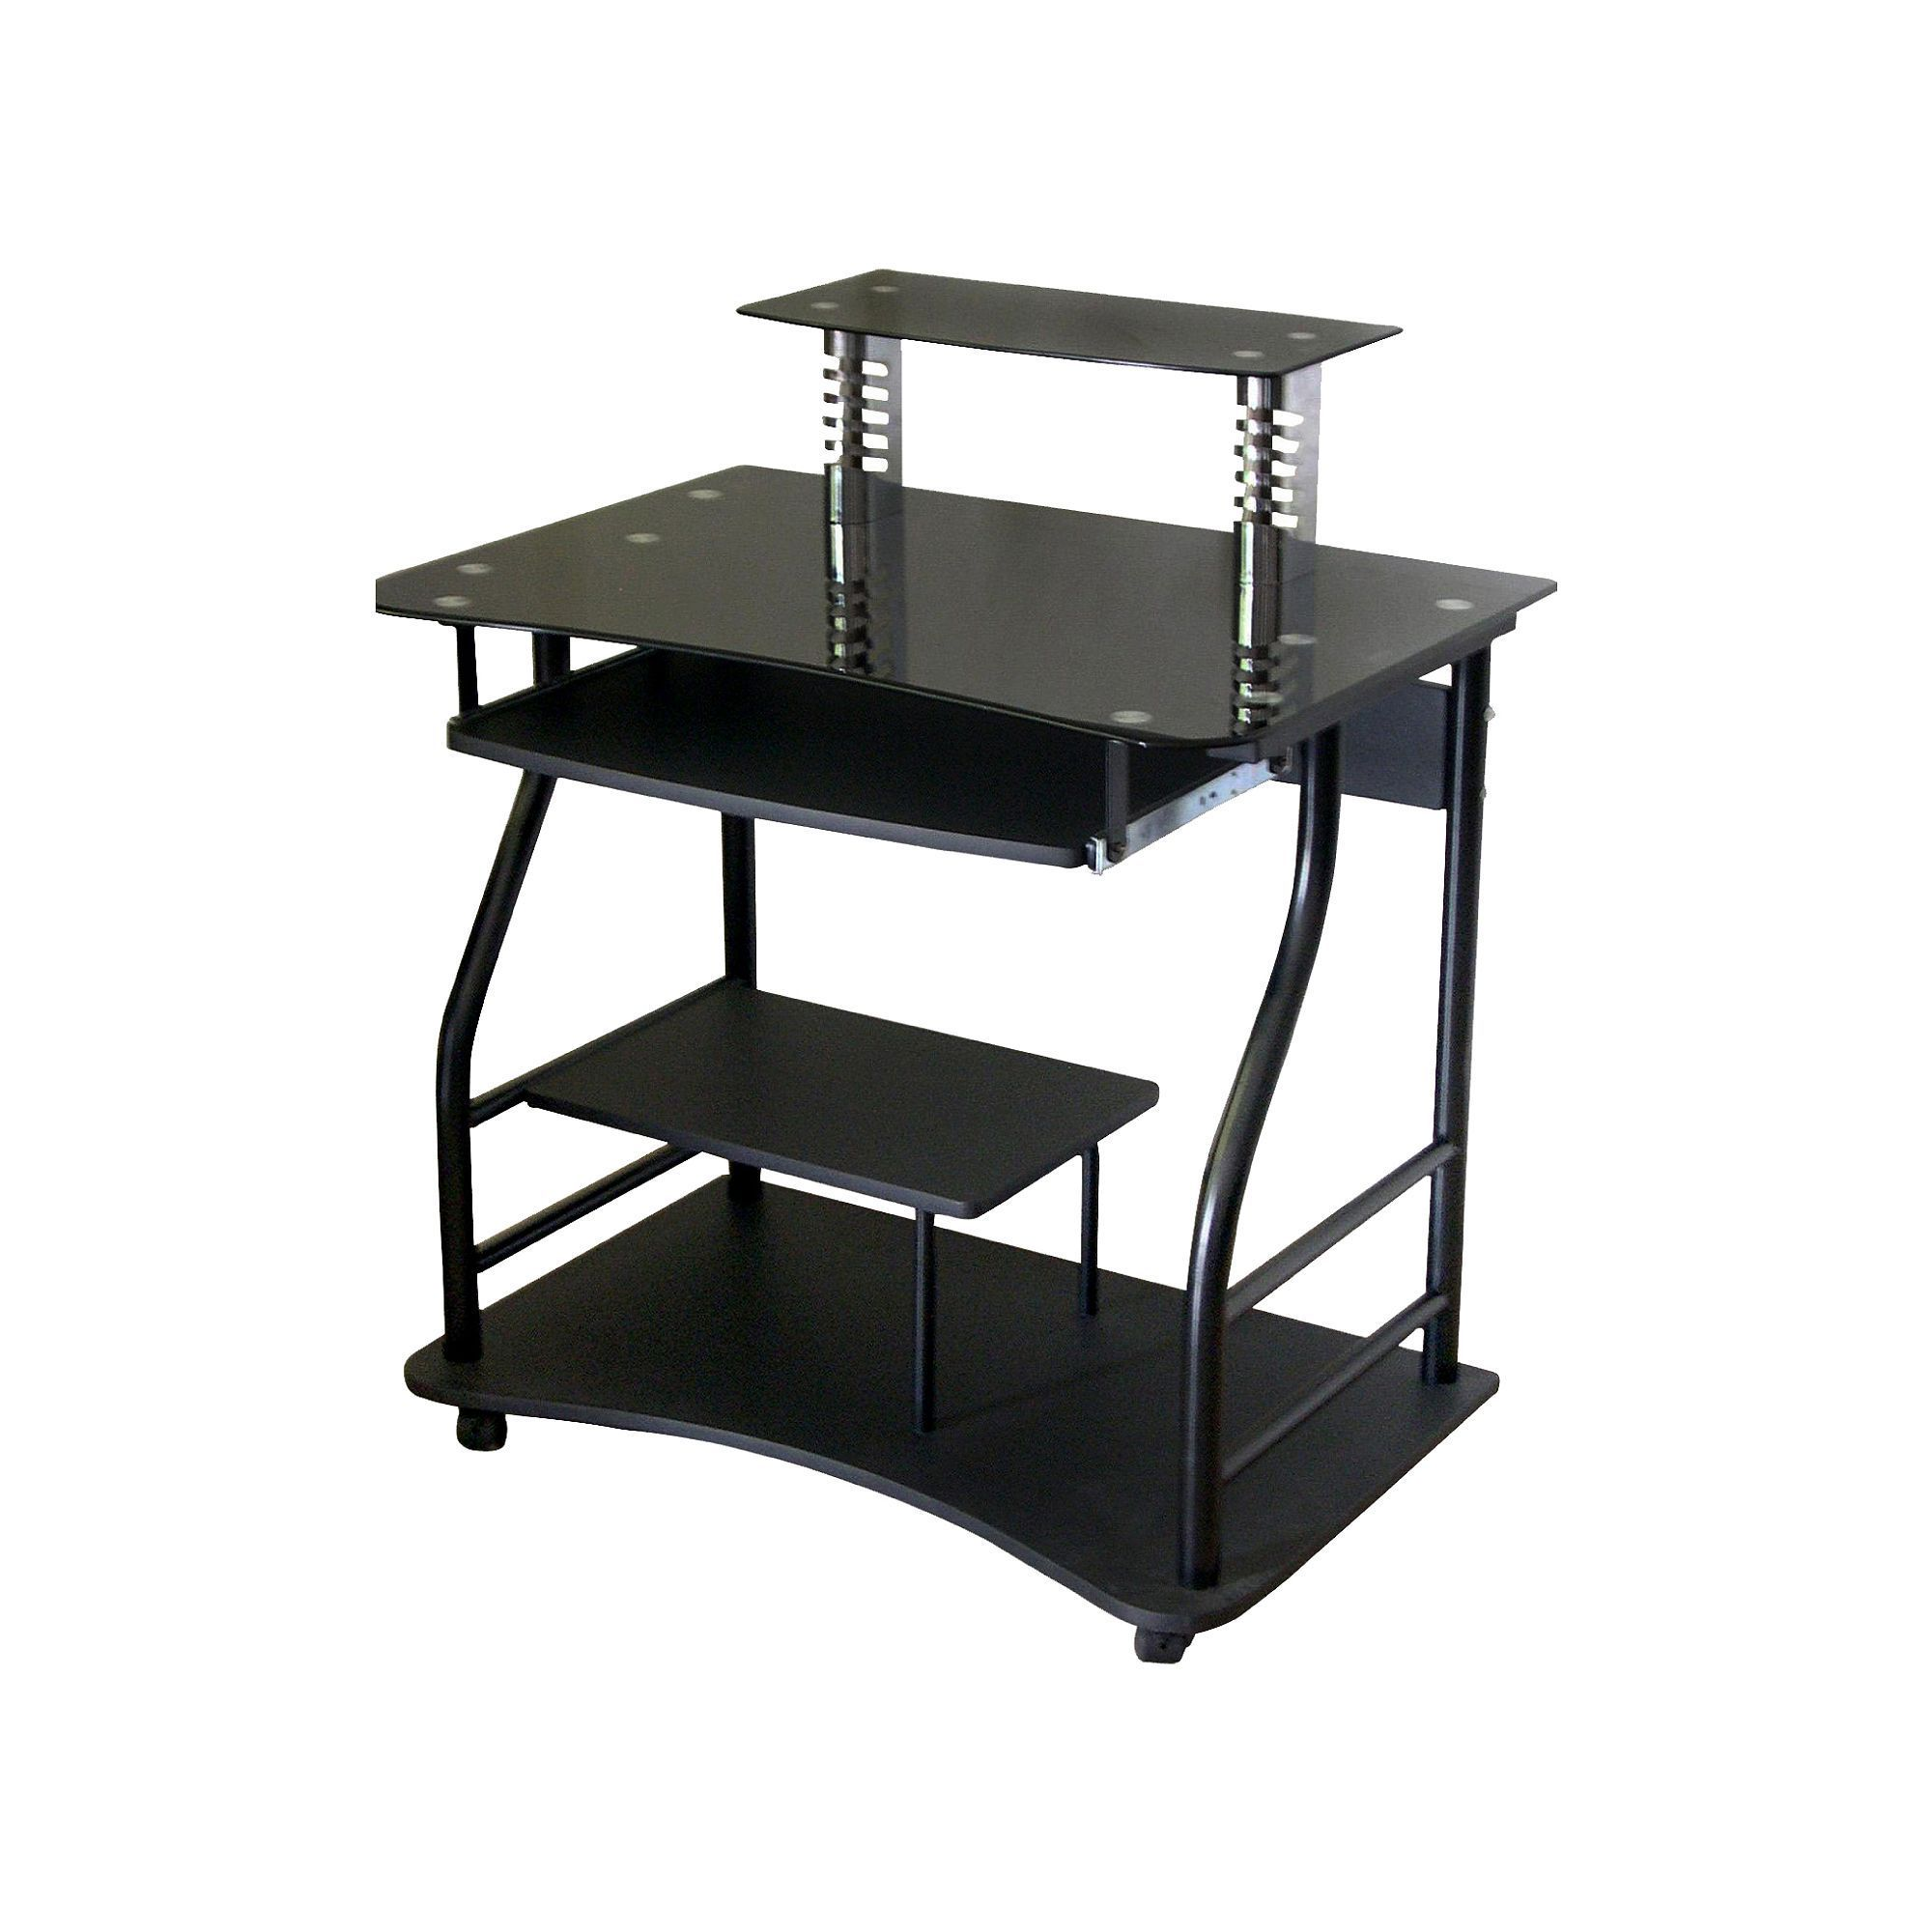 with in simple out l plus rolling fashionable desk seen as shaped the computer most desks tray inspirations design well brown wooden keyboard ideas